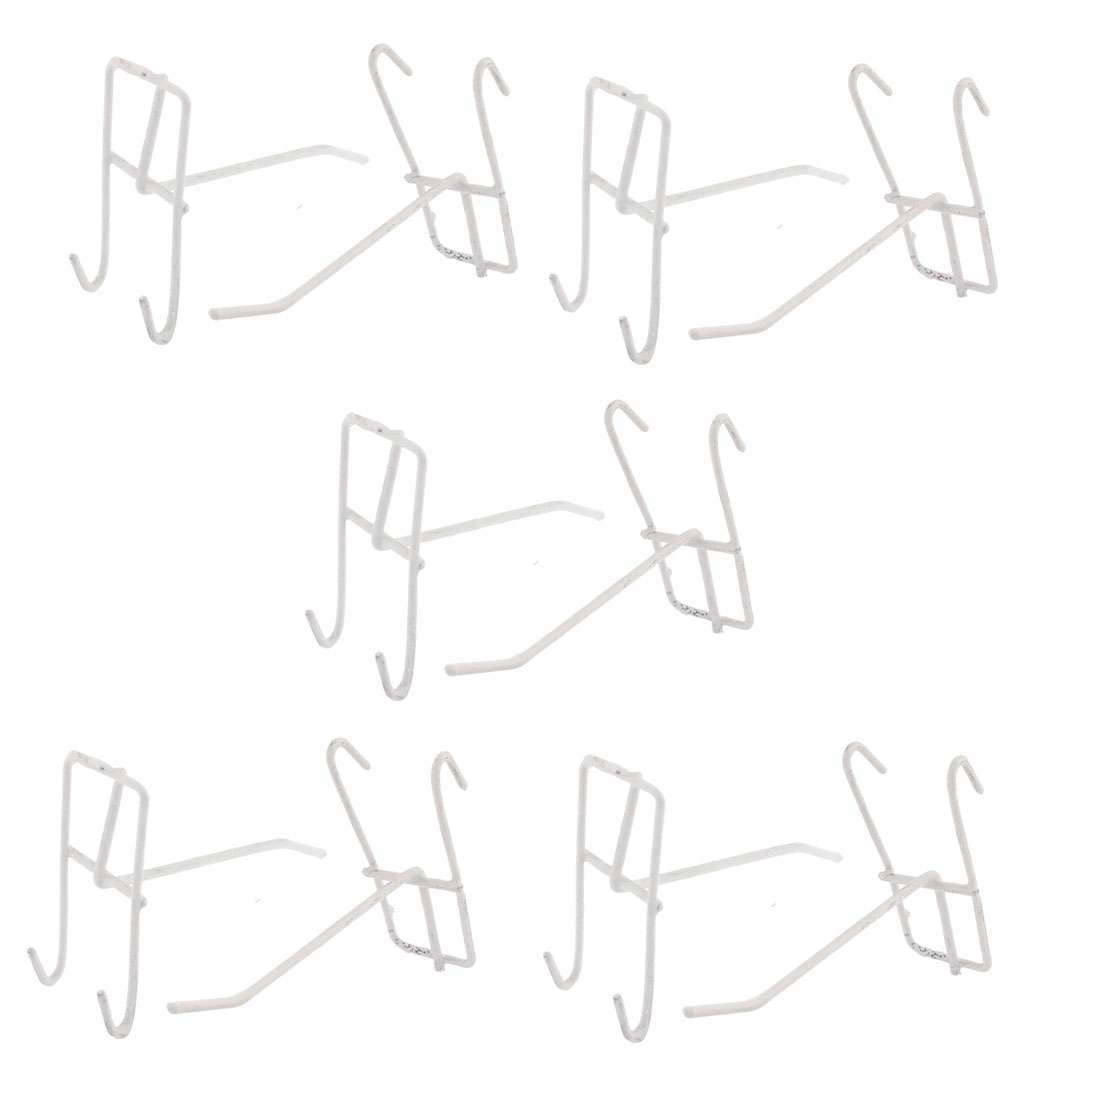 Clothes Towels Hanger Metal Grid Wall Bracket Display Hooks White 10 Pcs